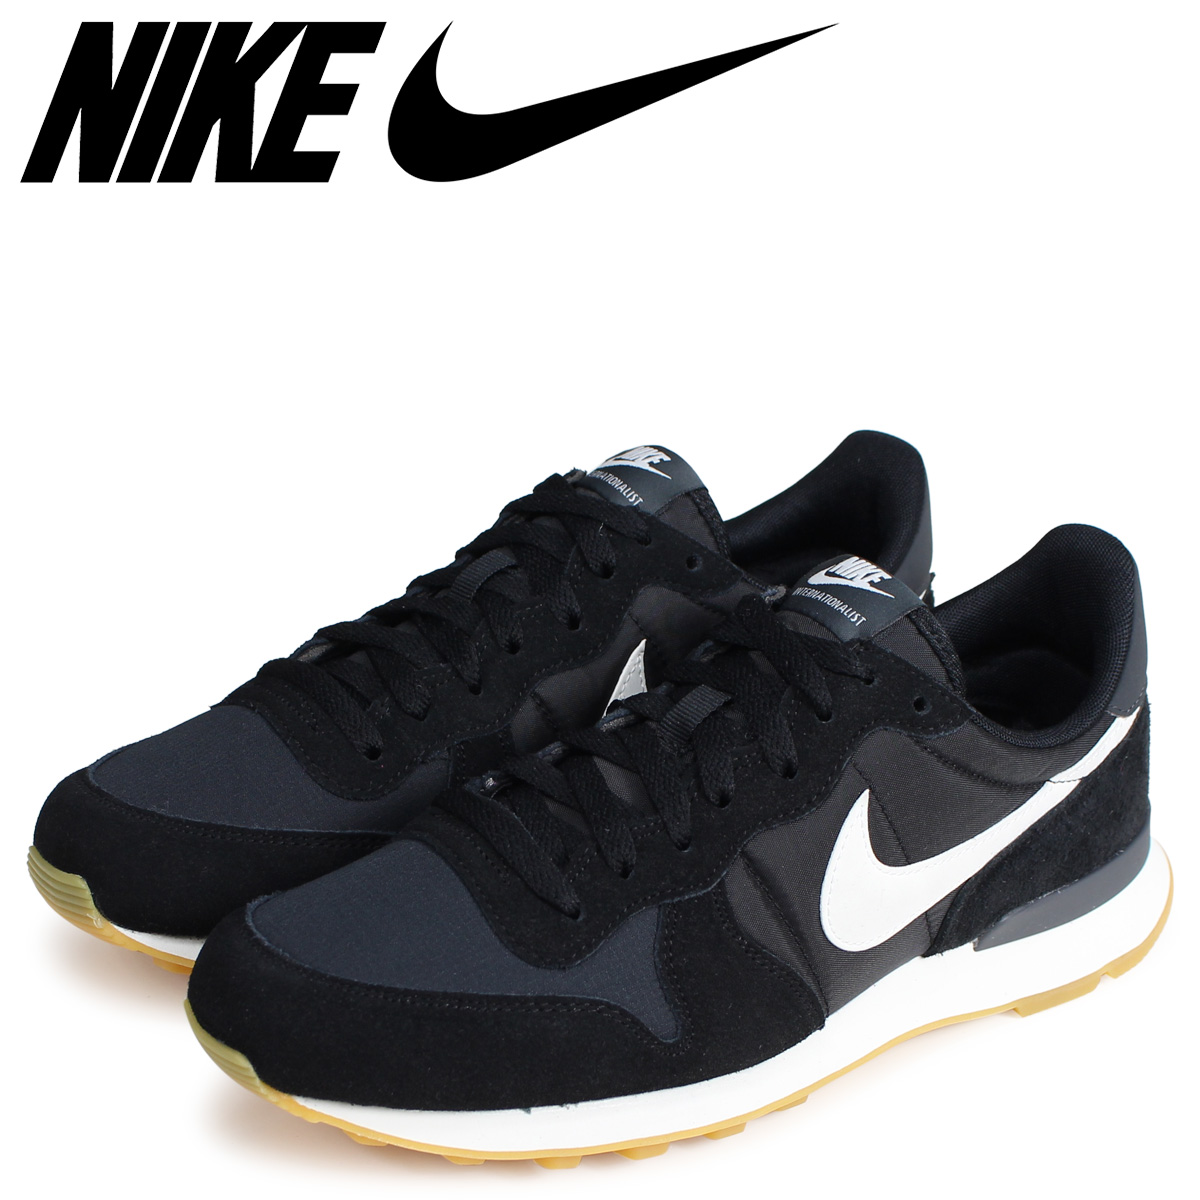 NIKE Nike internationalist sneakers men WMNS INTERNATIONALIST black black 828,407 021